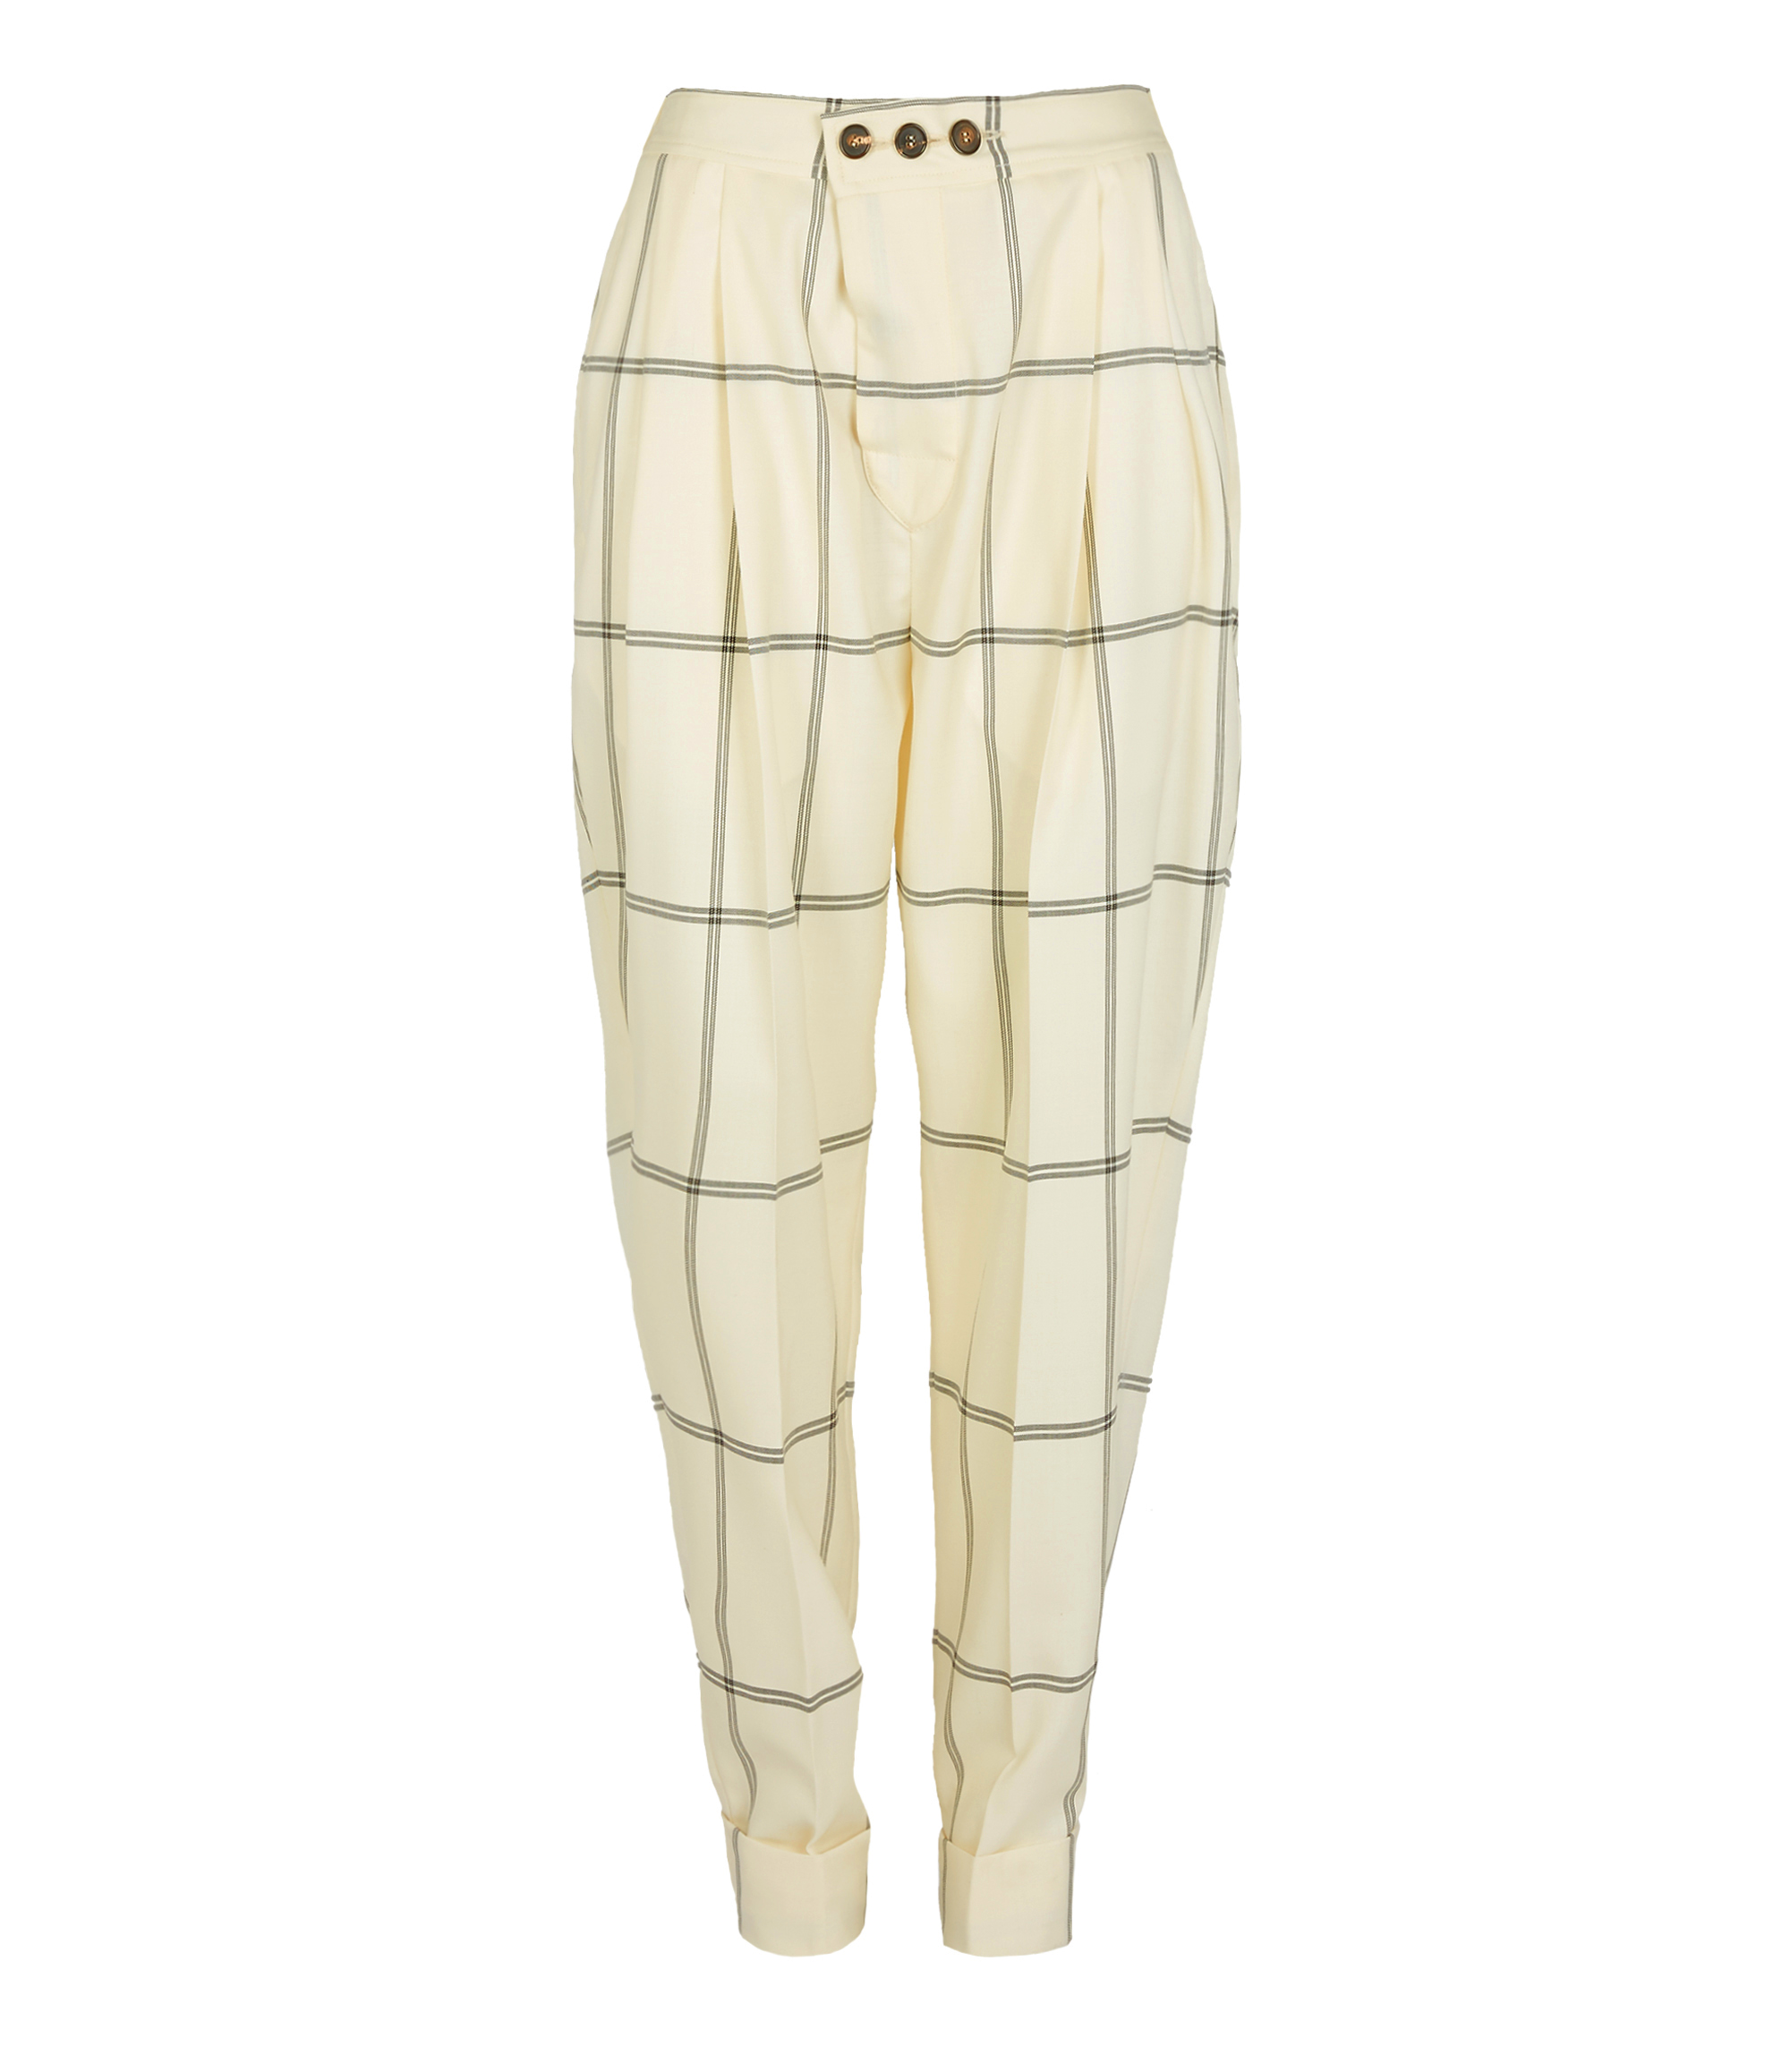 Vivienne Westwood Zoot Trousers White Check